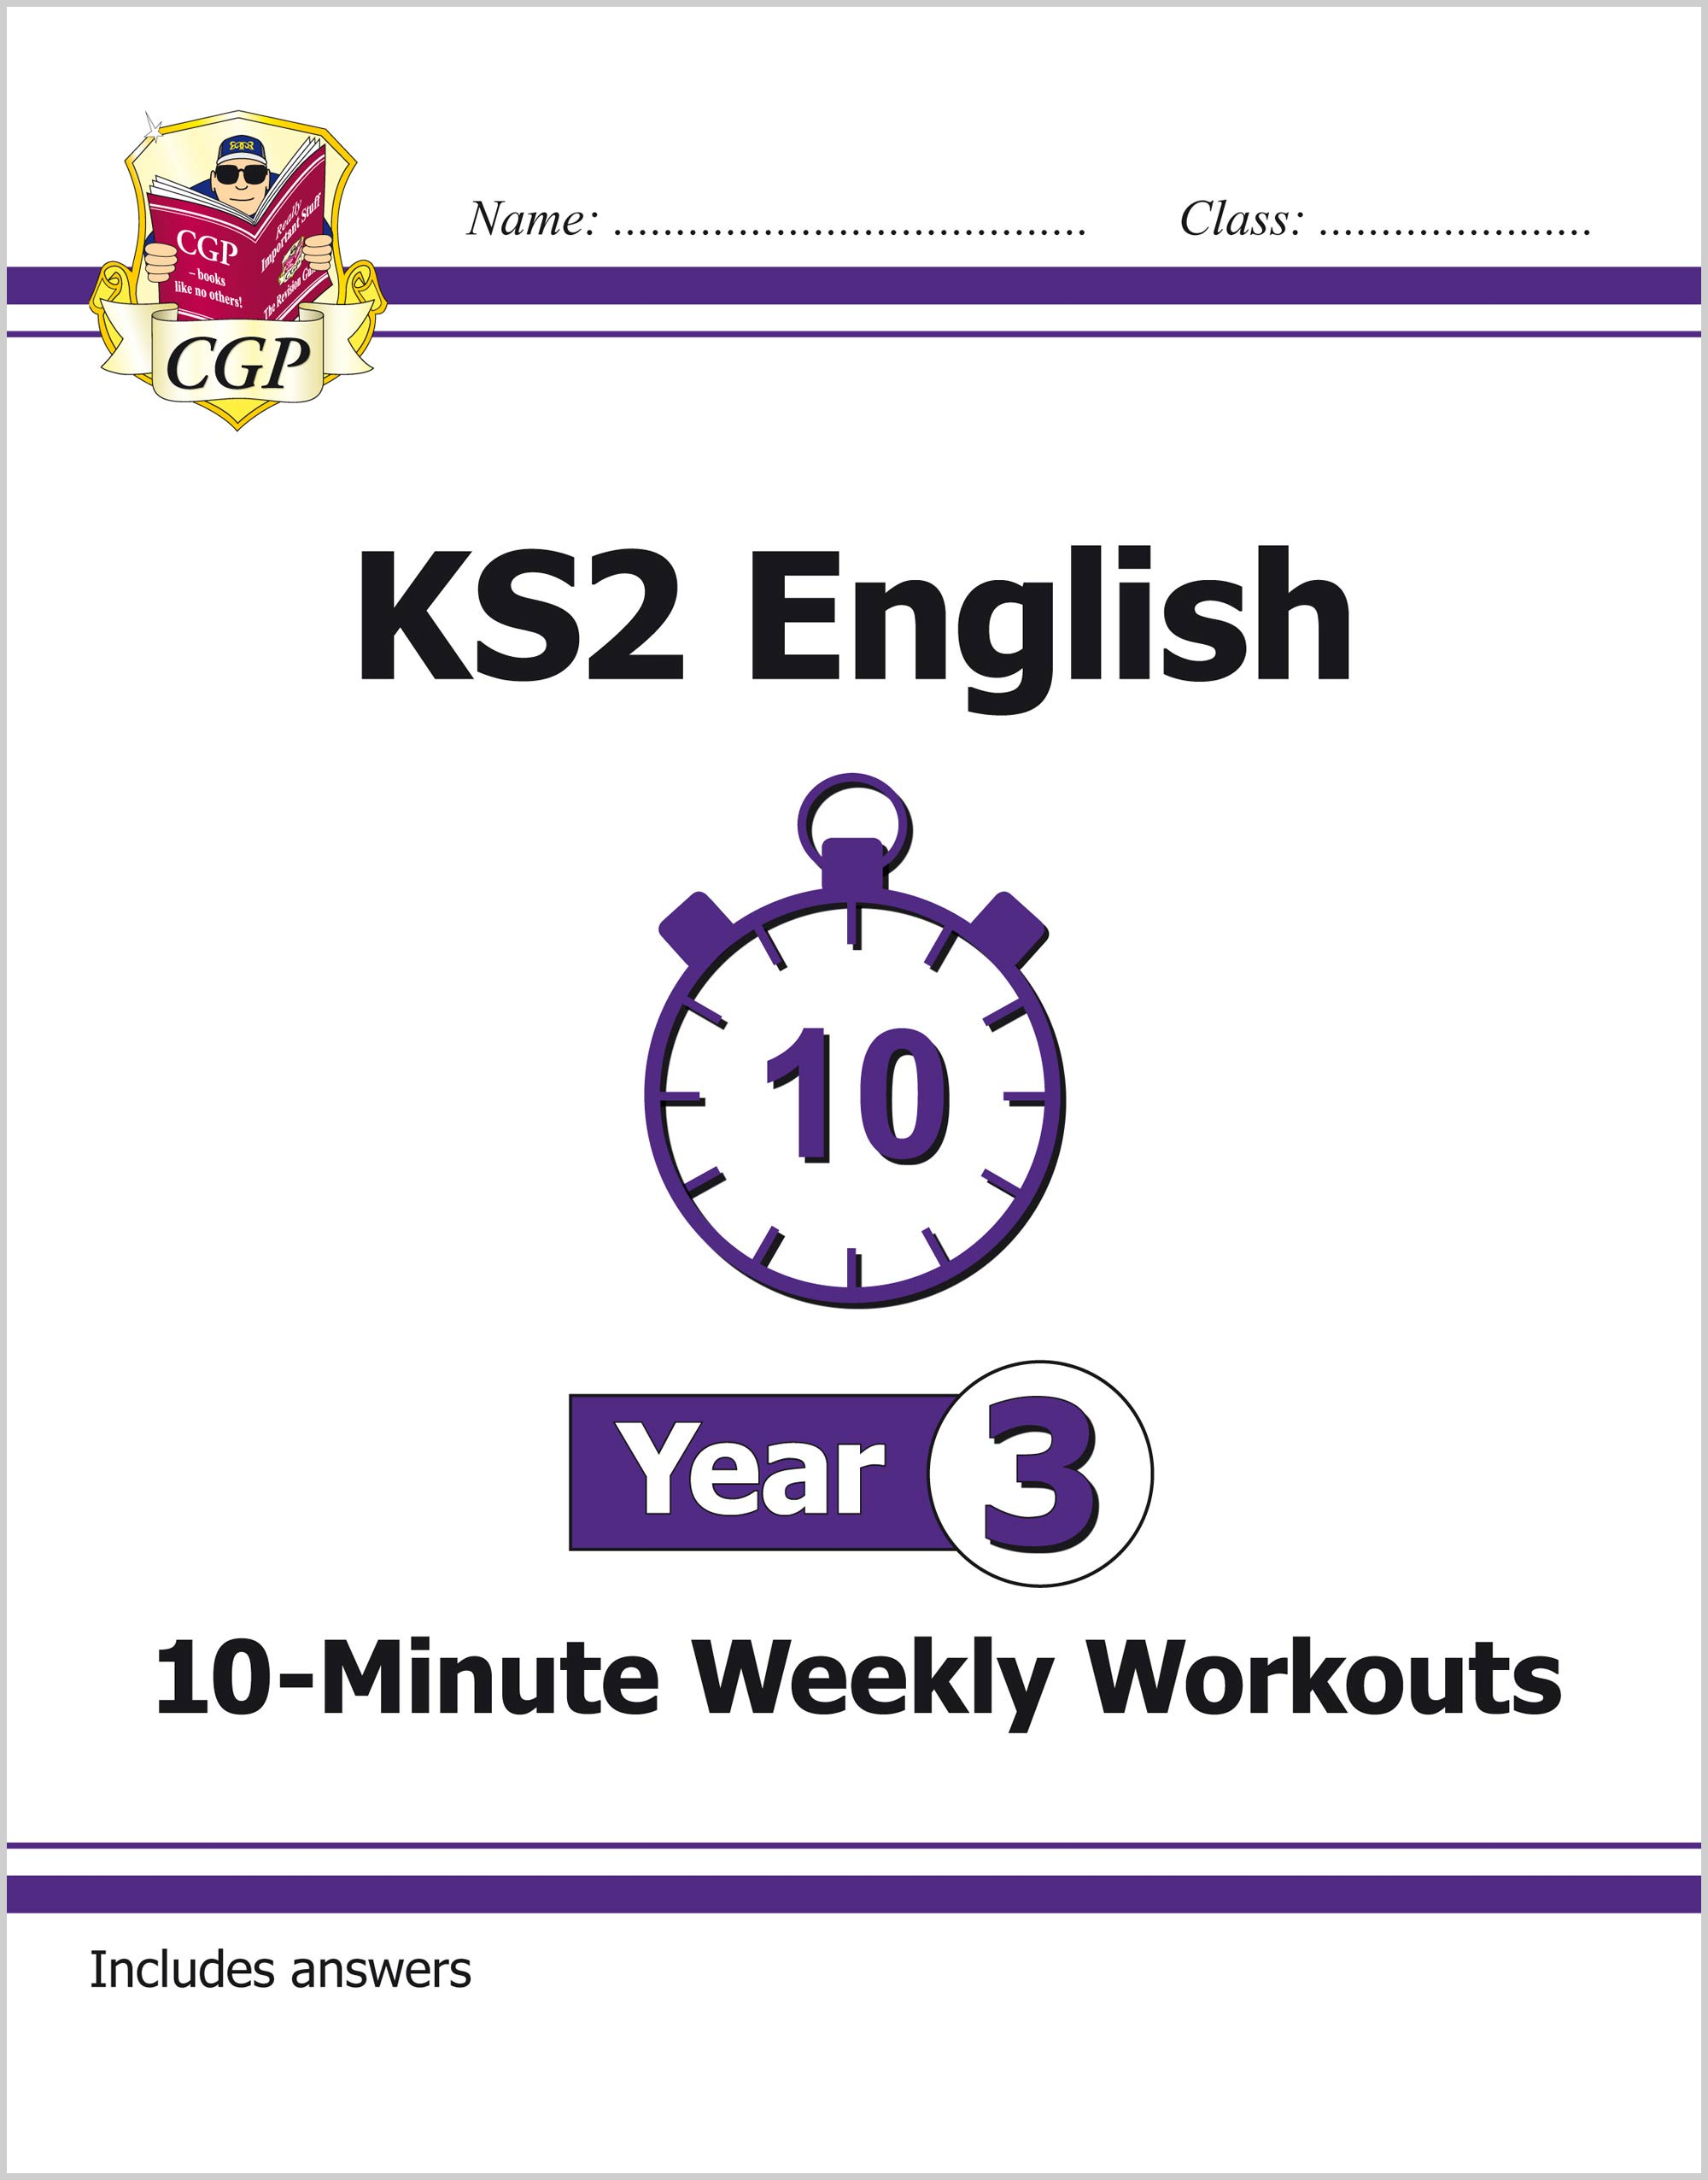 E3XW21 - KS2 English 10-Minute Weekly Workouts - Year 3